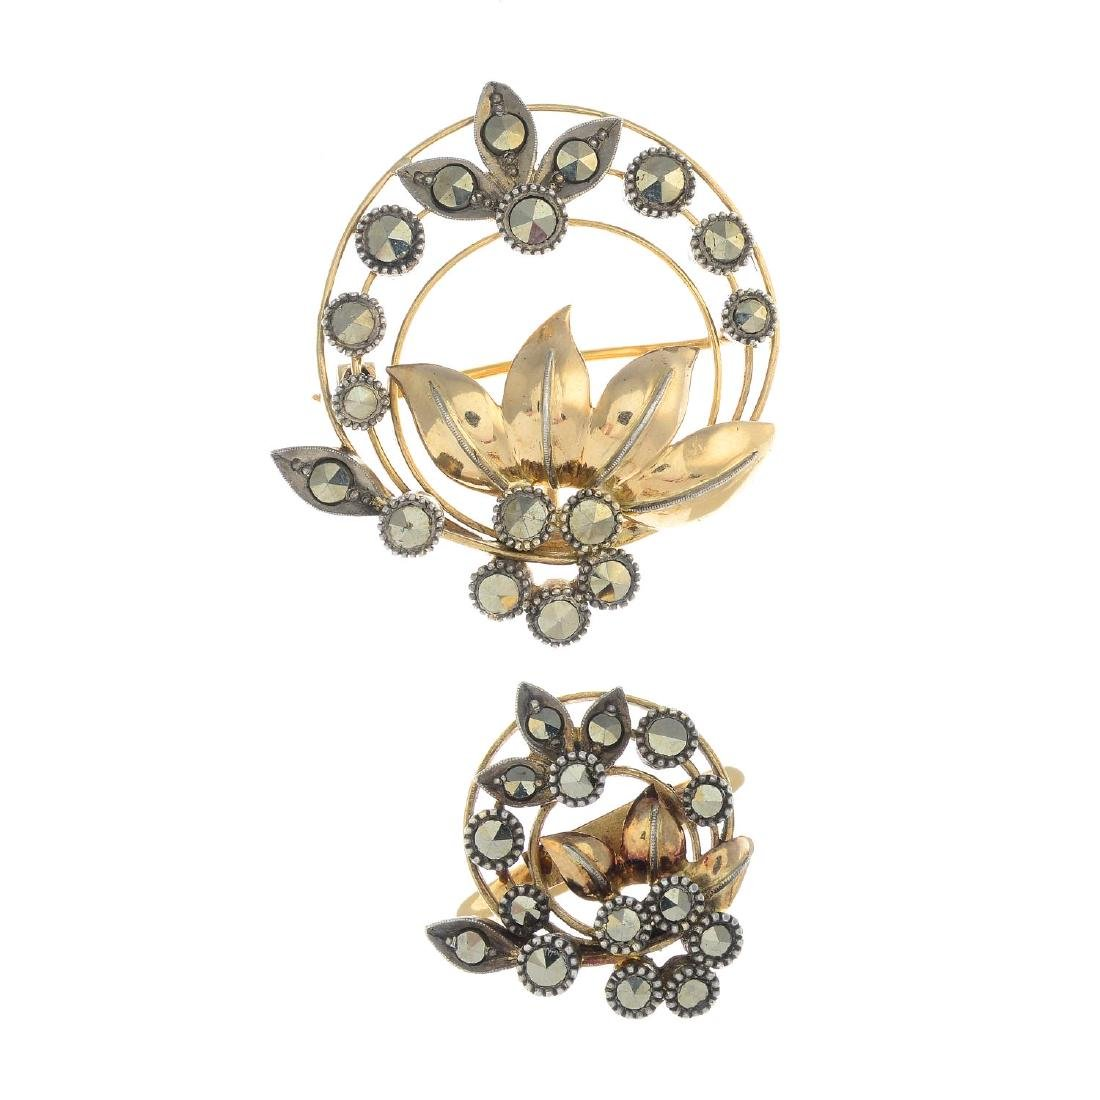 An mid 20th century gold and silver marcasite jewellery